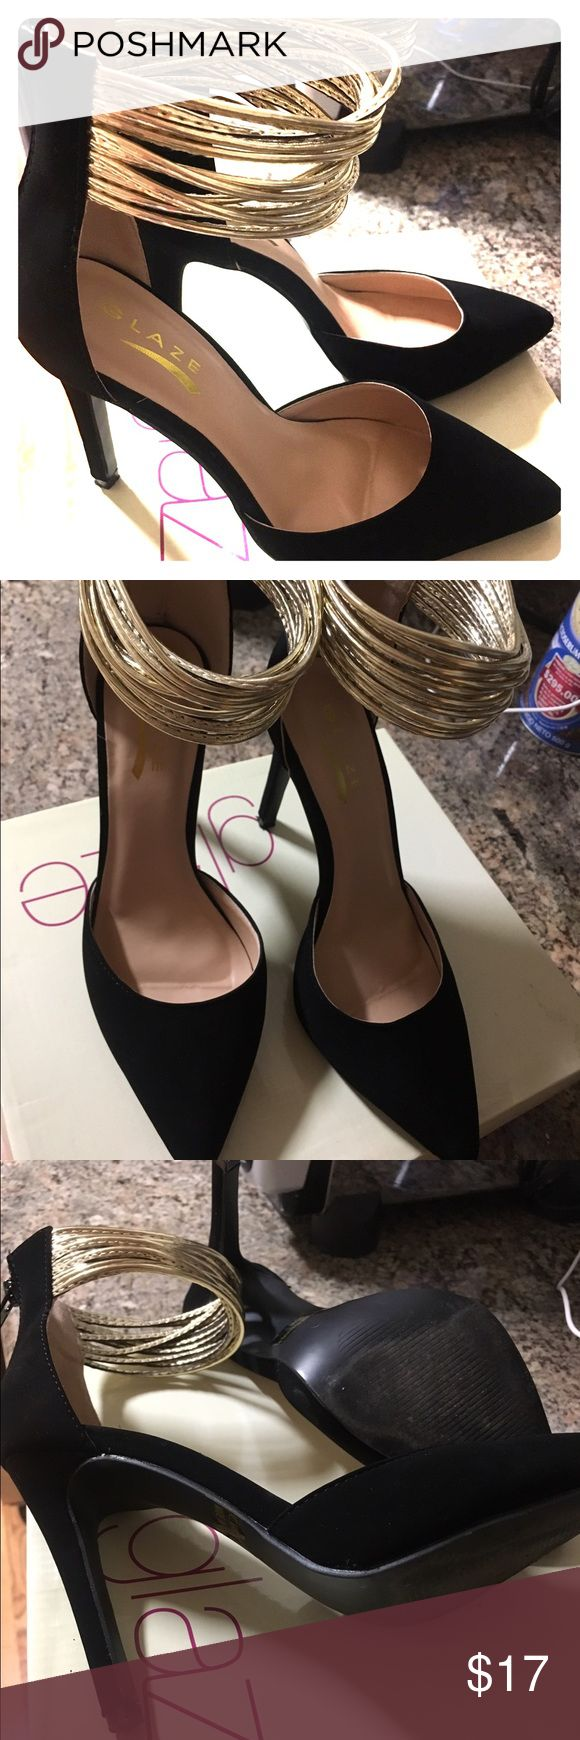 Black and gold D'Orsay Pumps Super cute and very classy. True to size. Worn once. glaze Shoes Heels